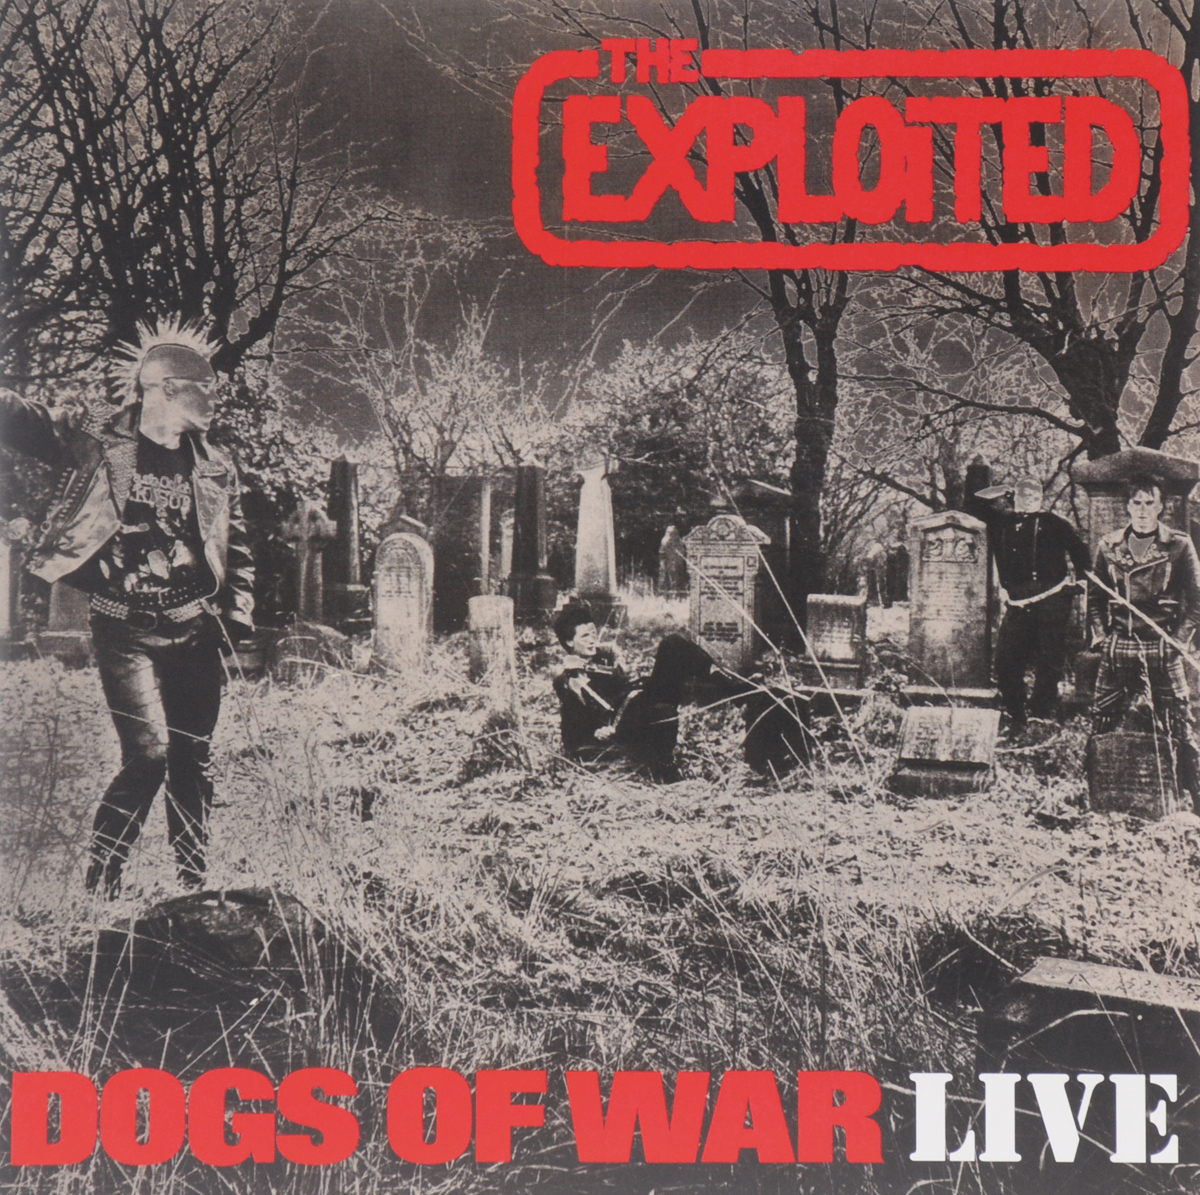 The Exploited Exploited. Dogs Of War Live. Limited Edition (LP)